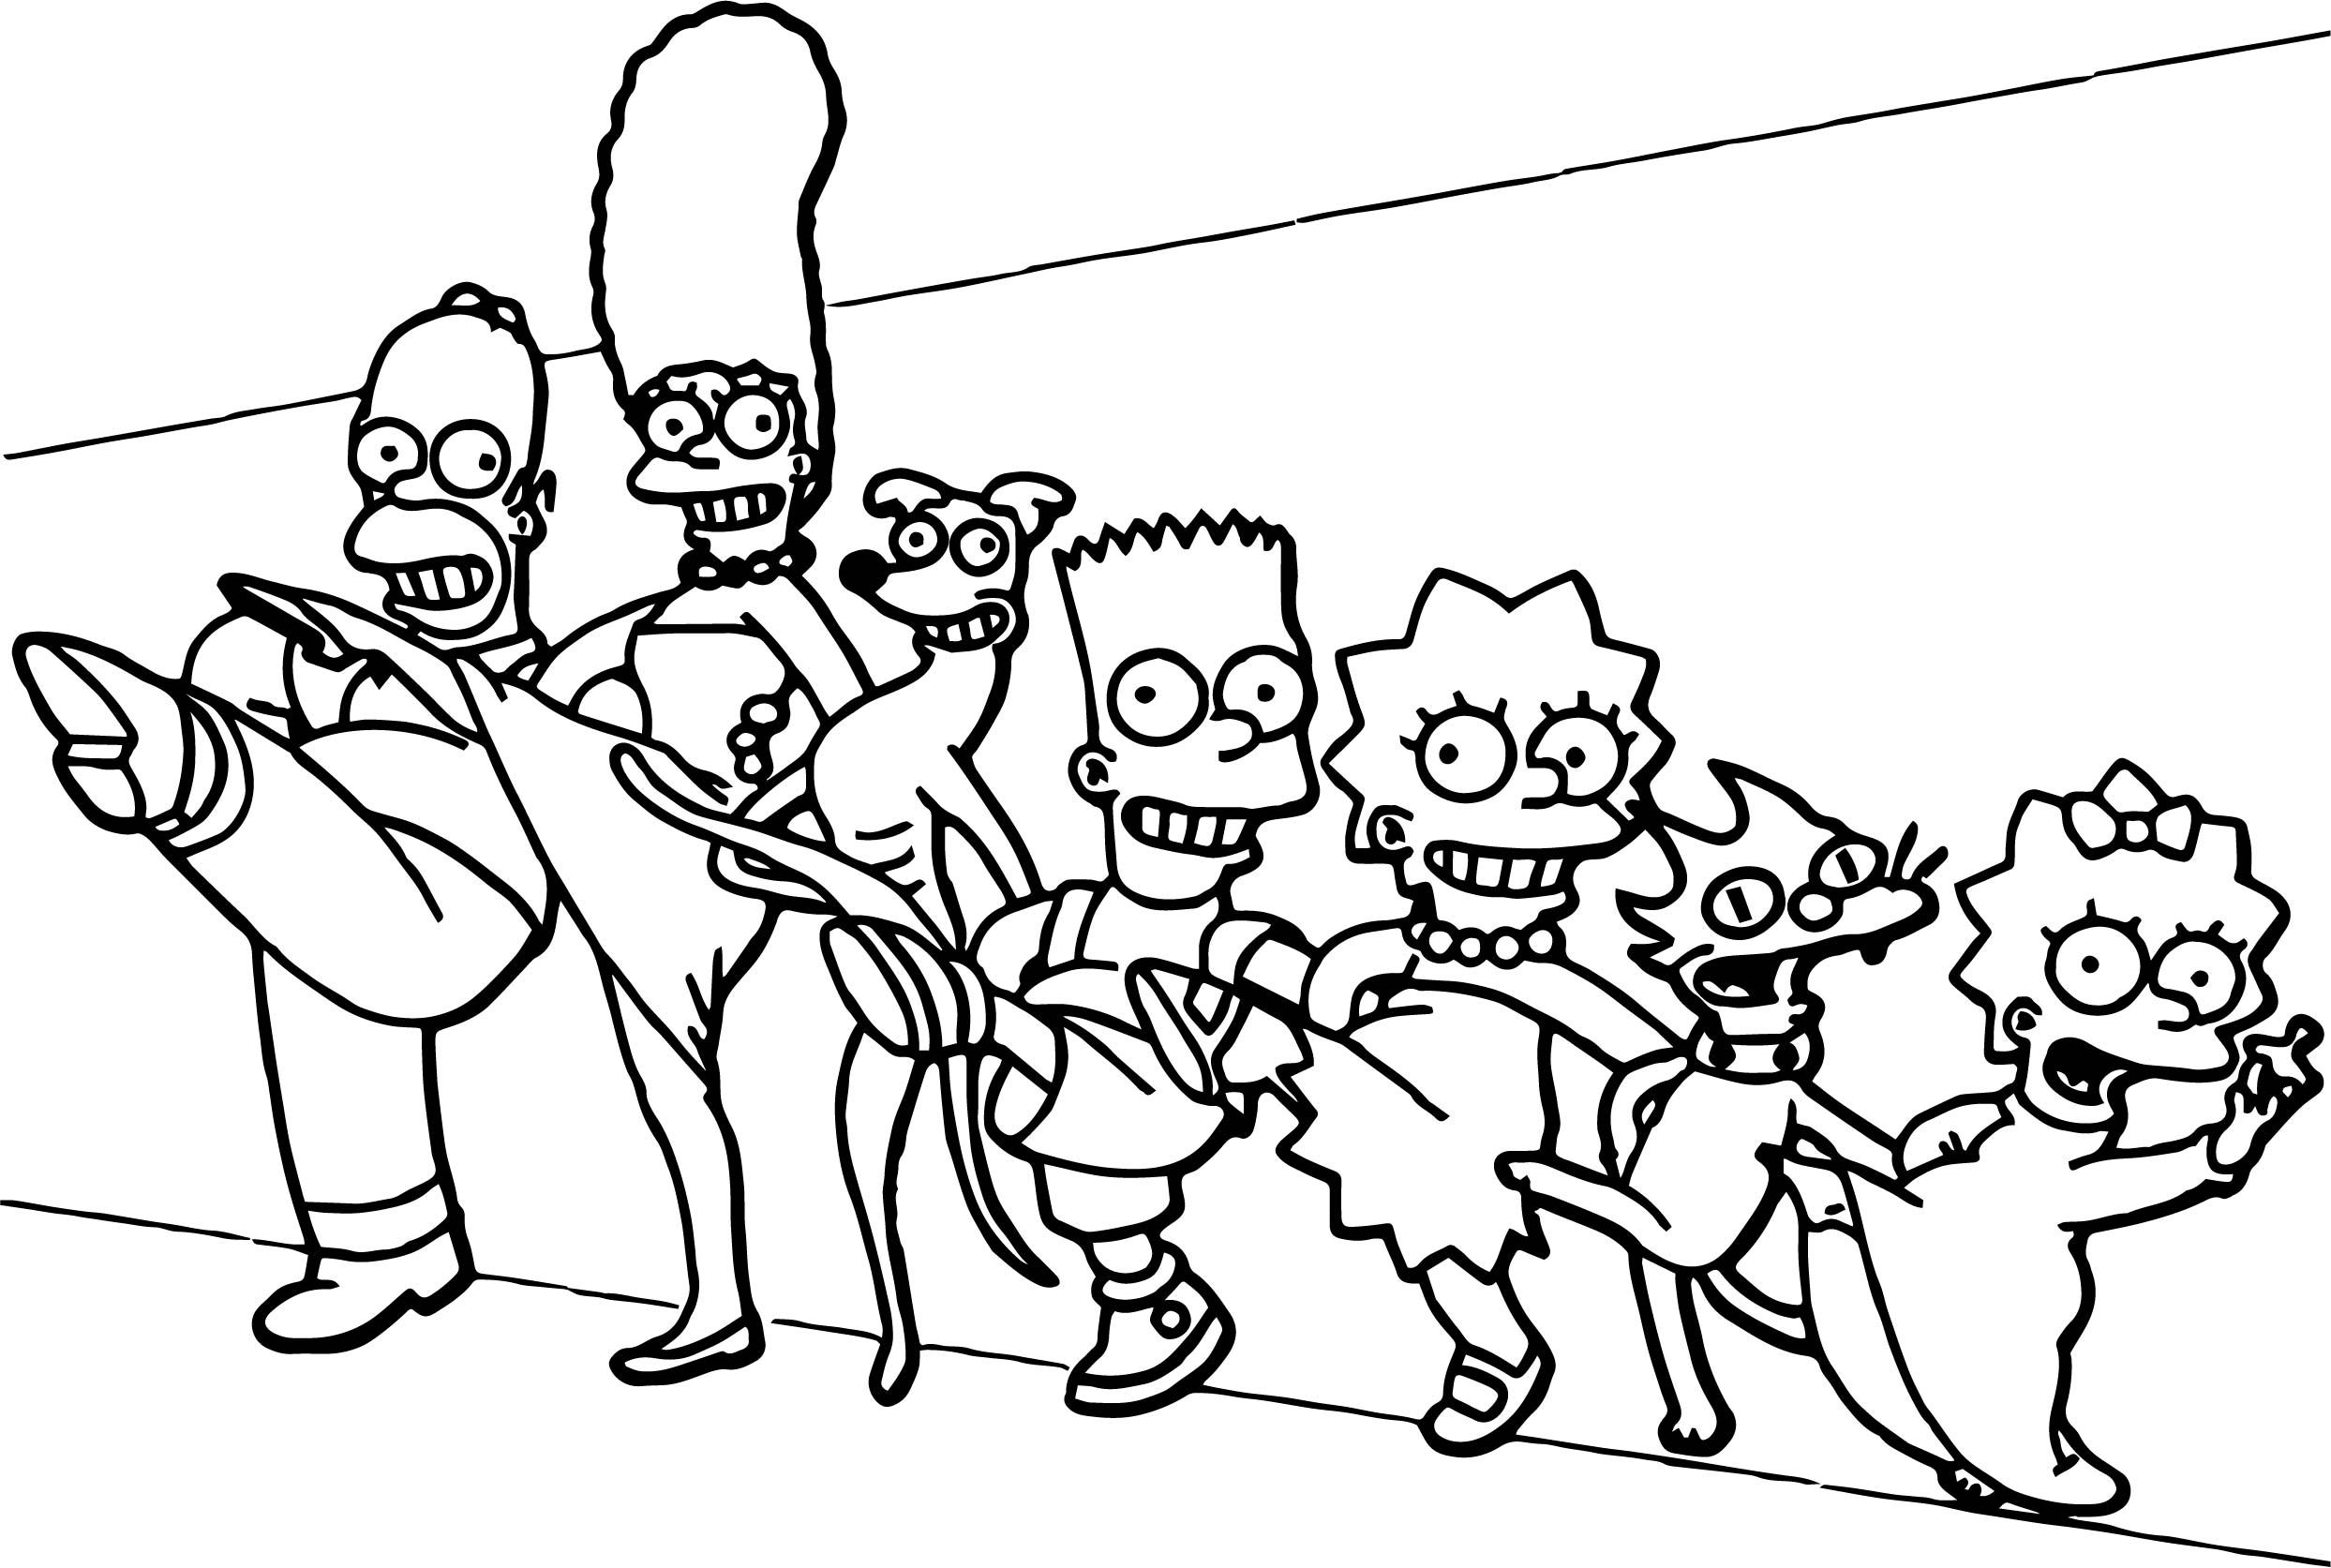 Nice Dance The Simpsons Family Coloring Page Family Coloring Pages Family Coloring Bee Coloring Pages